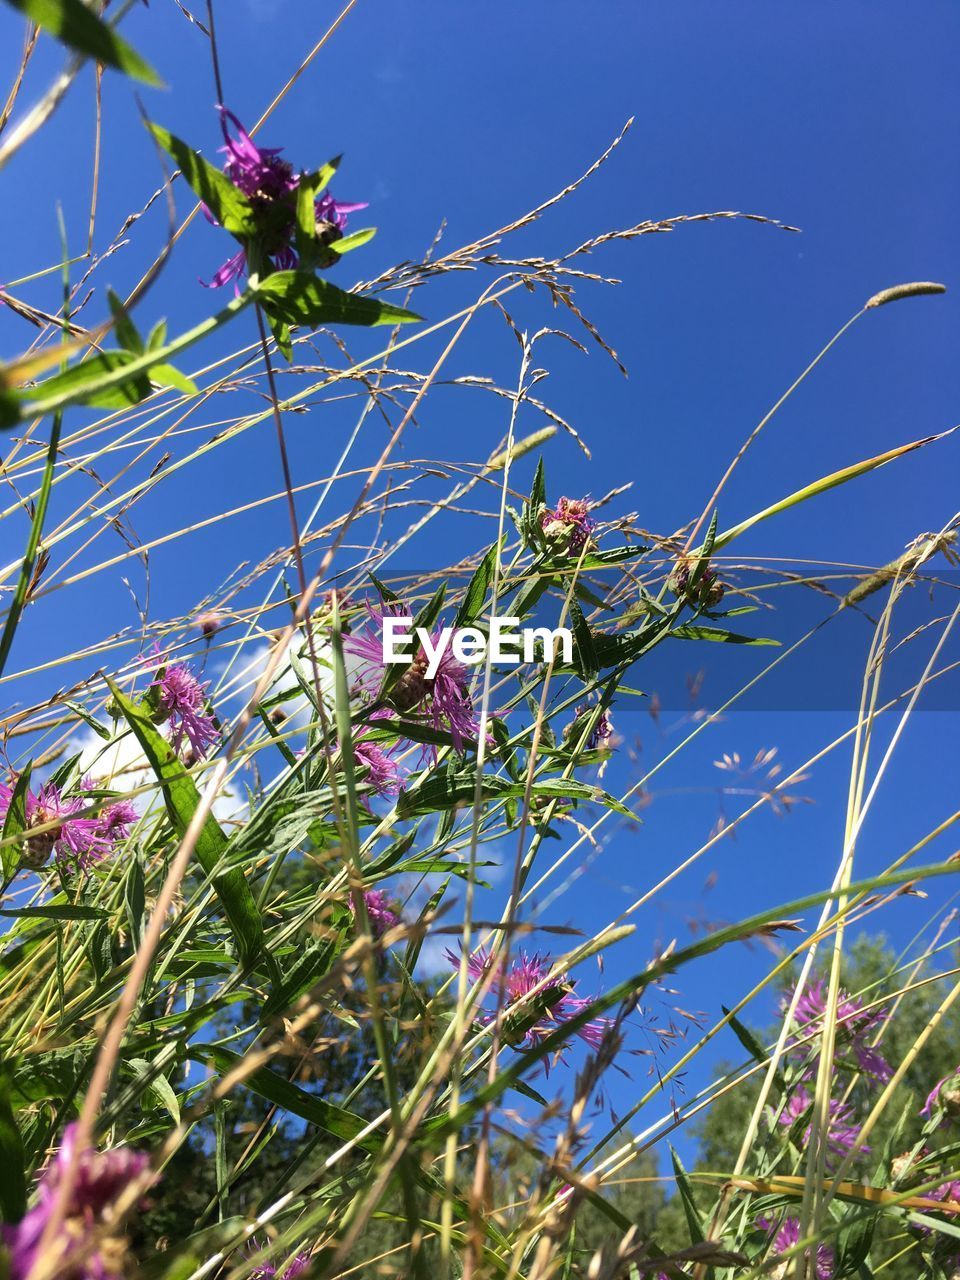 flower, growth, beauty in nature, low angle view, fragility, nature, blue, day, no people, plant, freshness, branch, tree, outdoors, petal, blossom, sky, clear sky, sunlight, green color, blooming, close-up, flower head